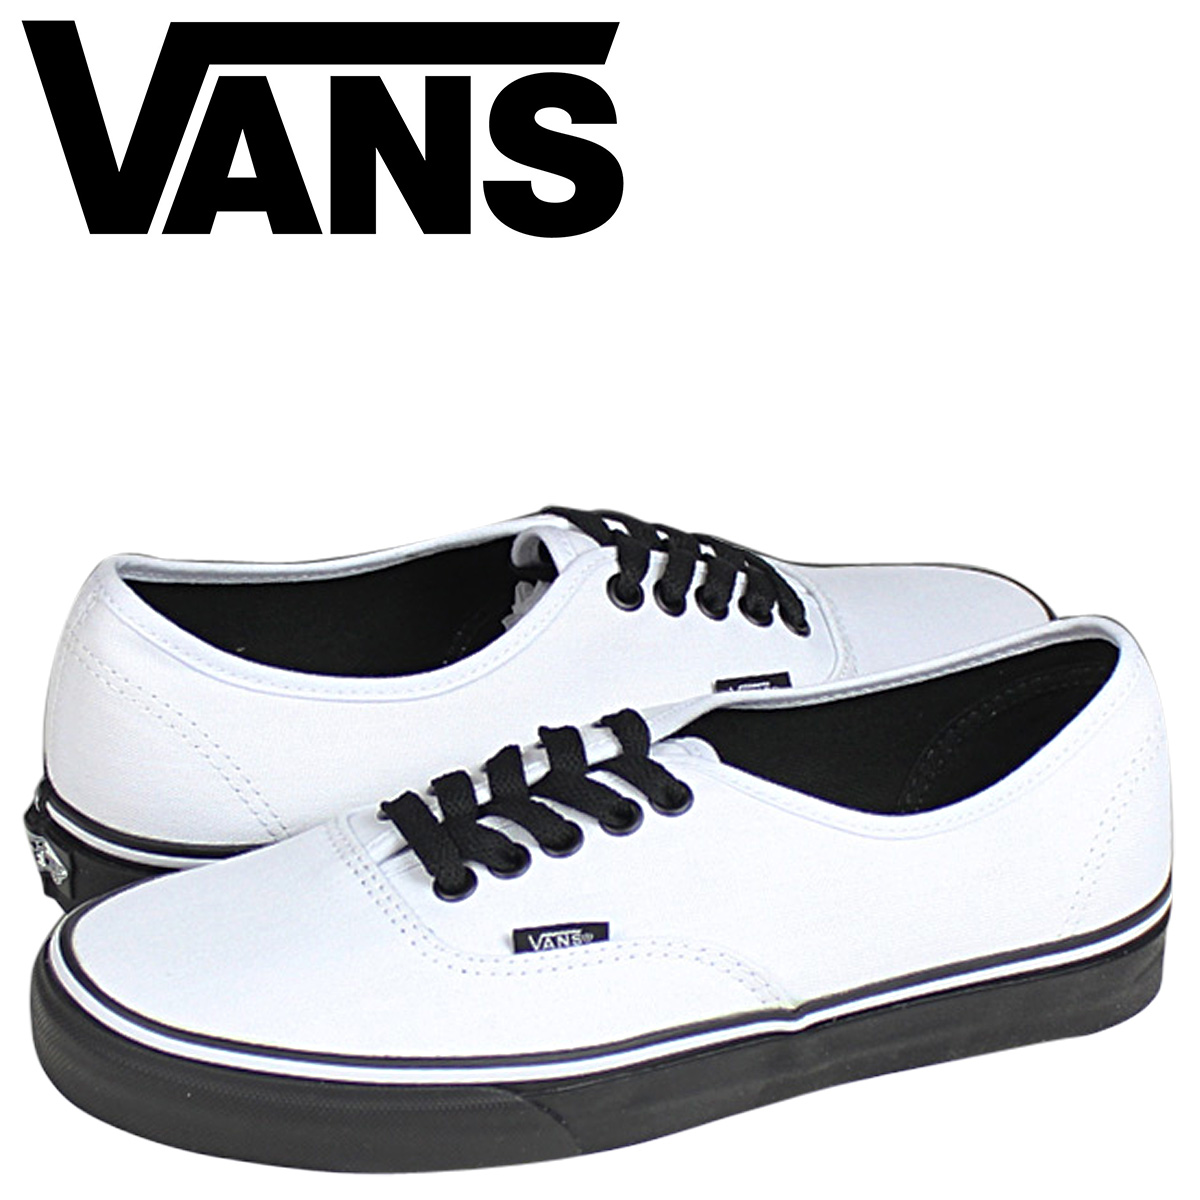 vans unisex black authentic canvas sneakers